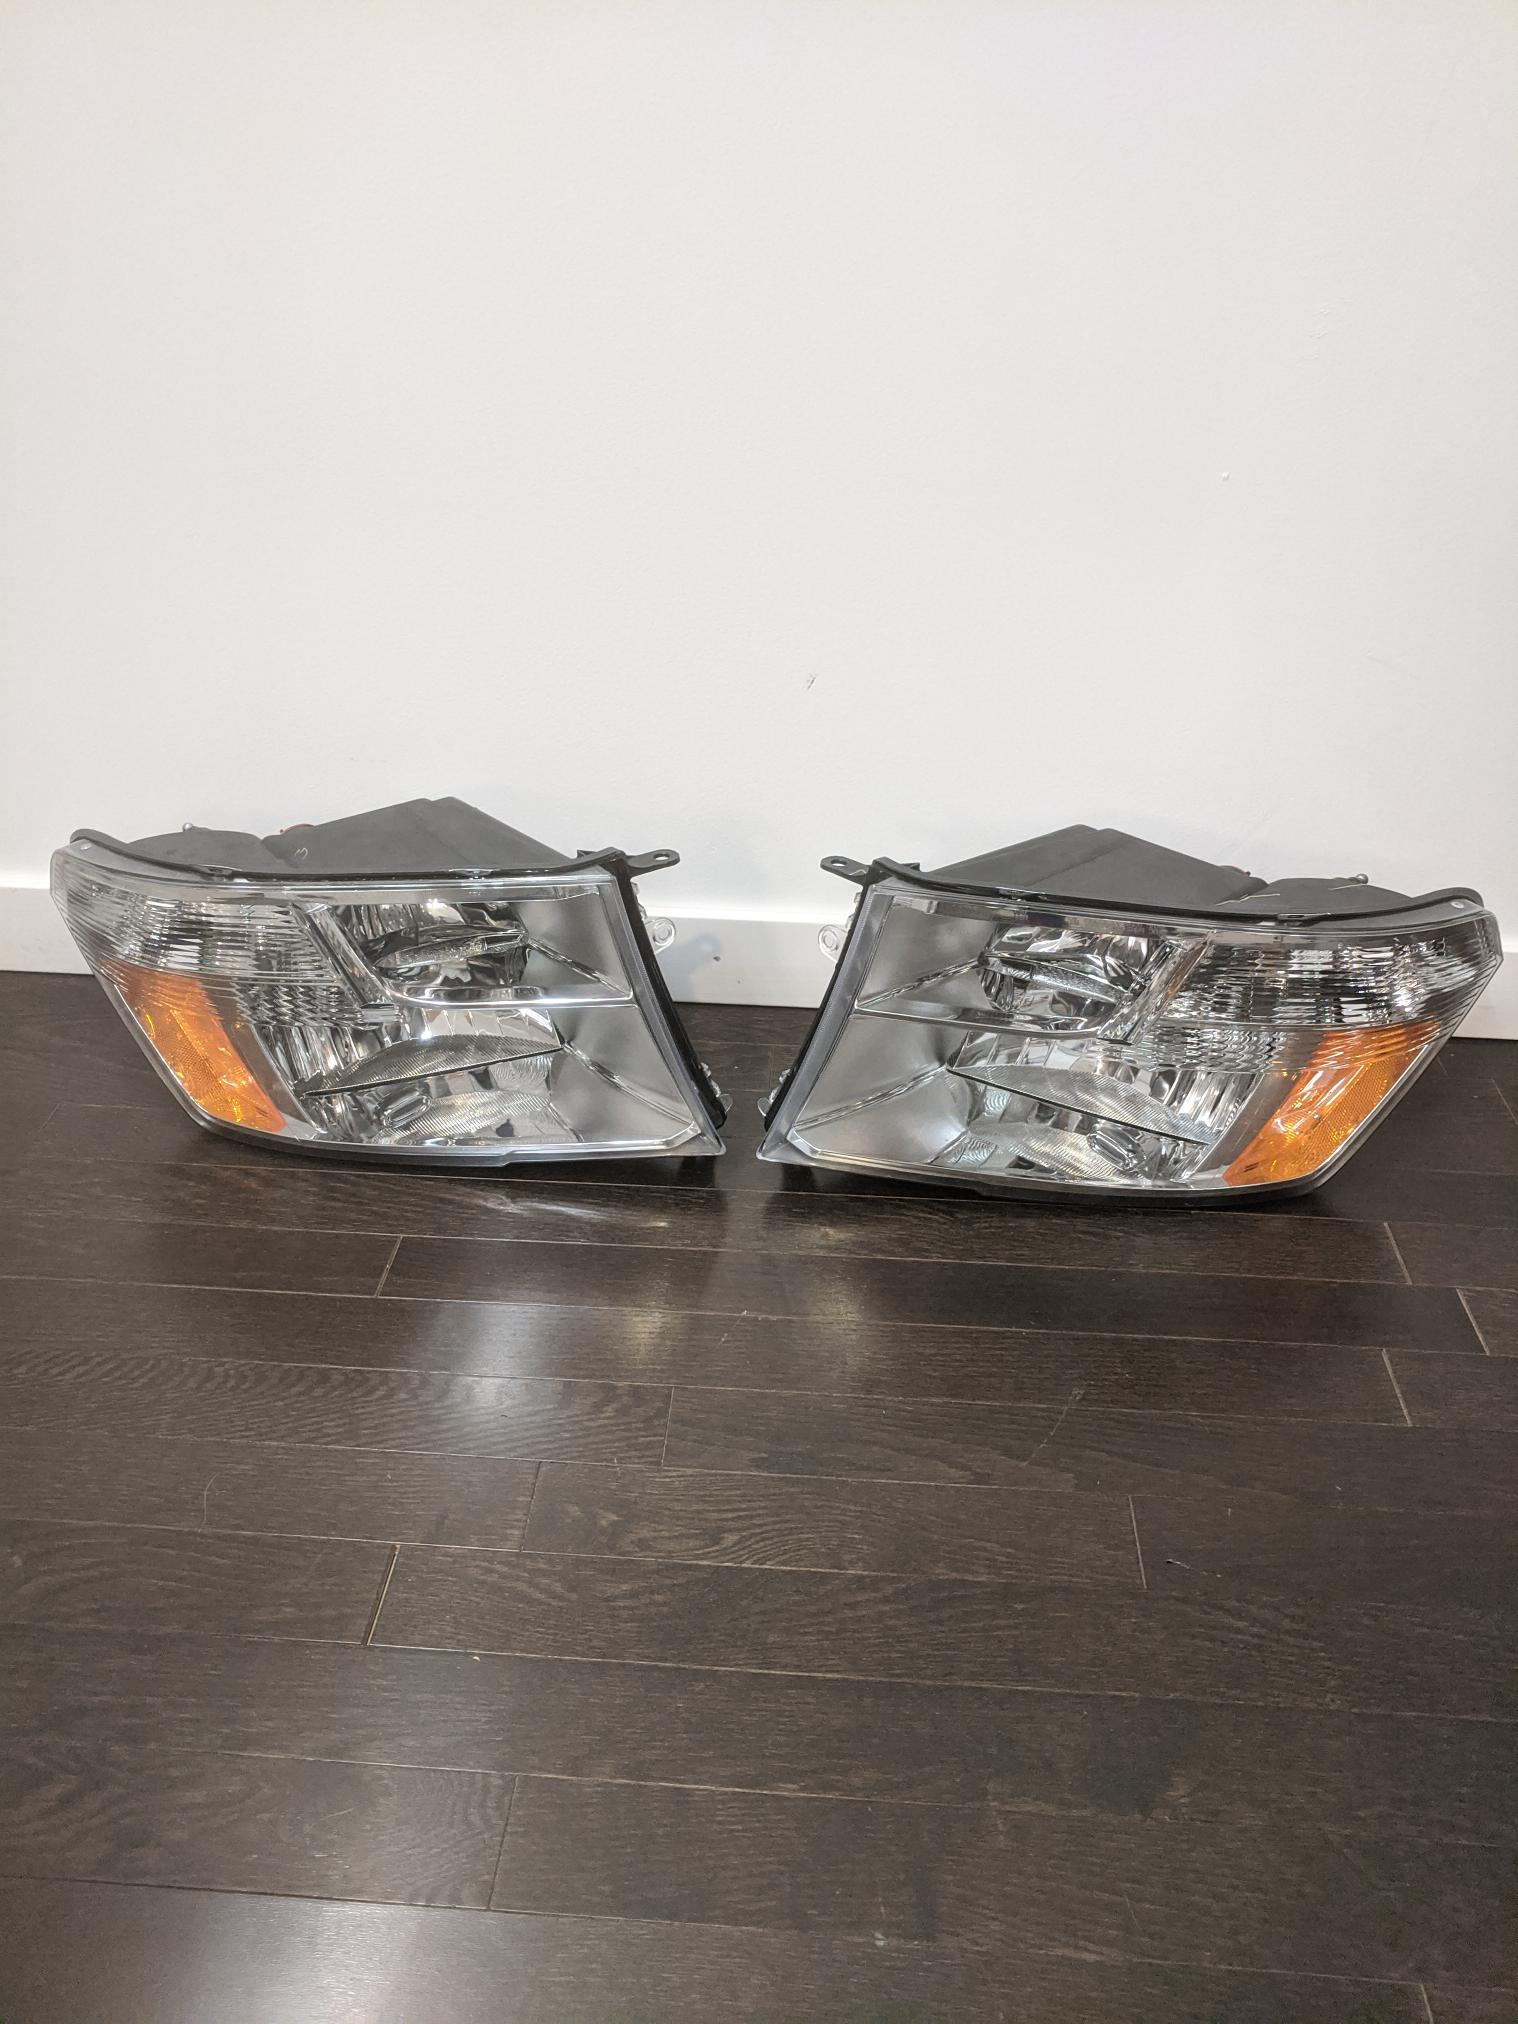 09-14 Dodge OEM Magna RAM  Headlight assembly 50693B 09ds